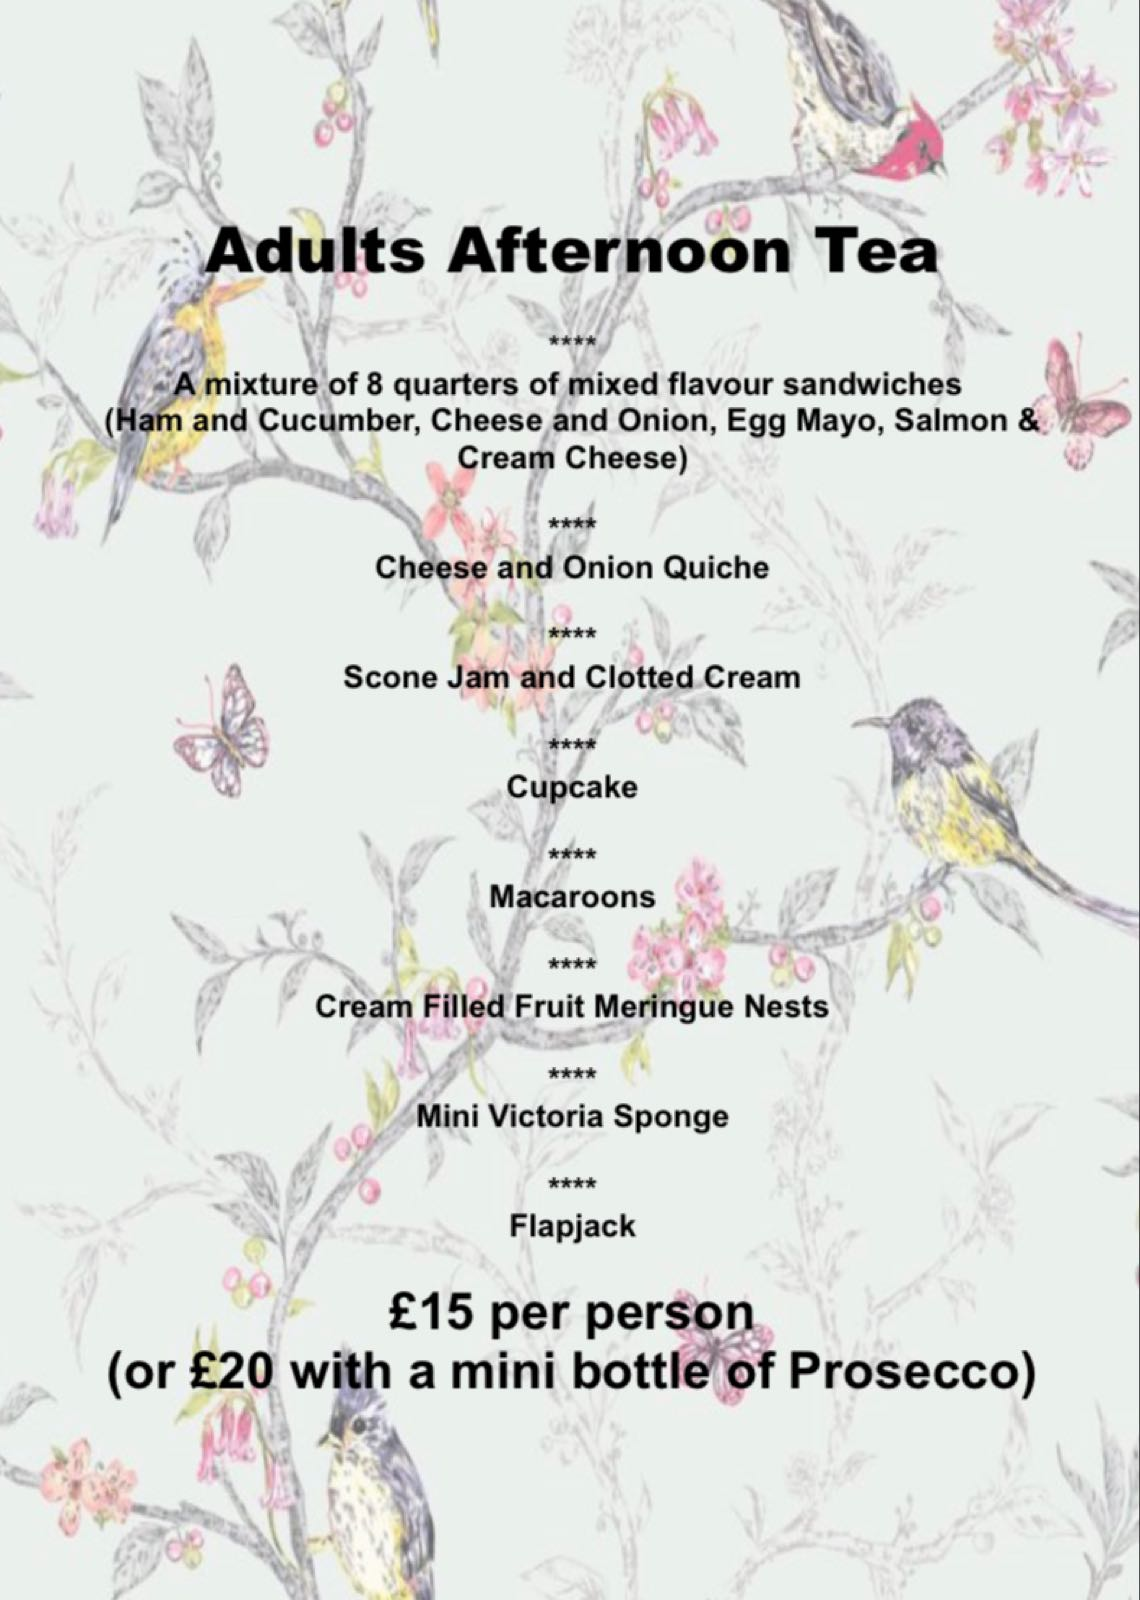 Adult Afternoon Tea